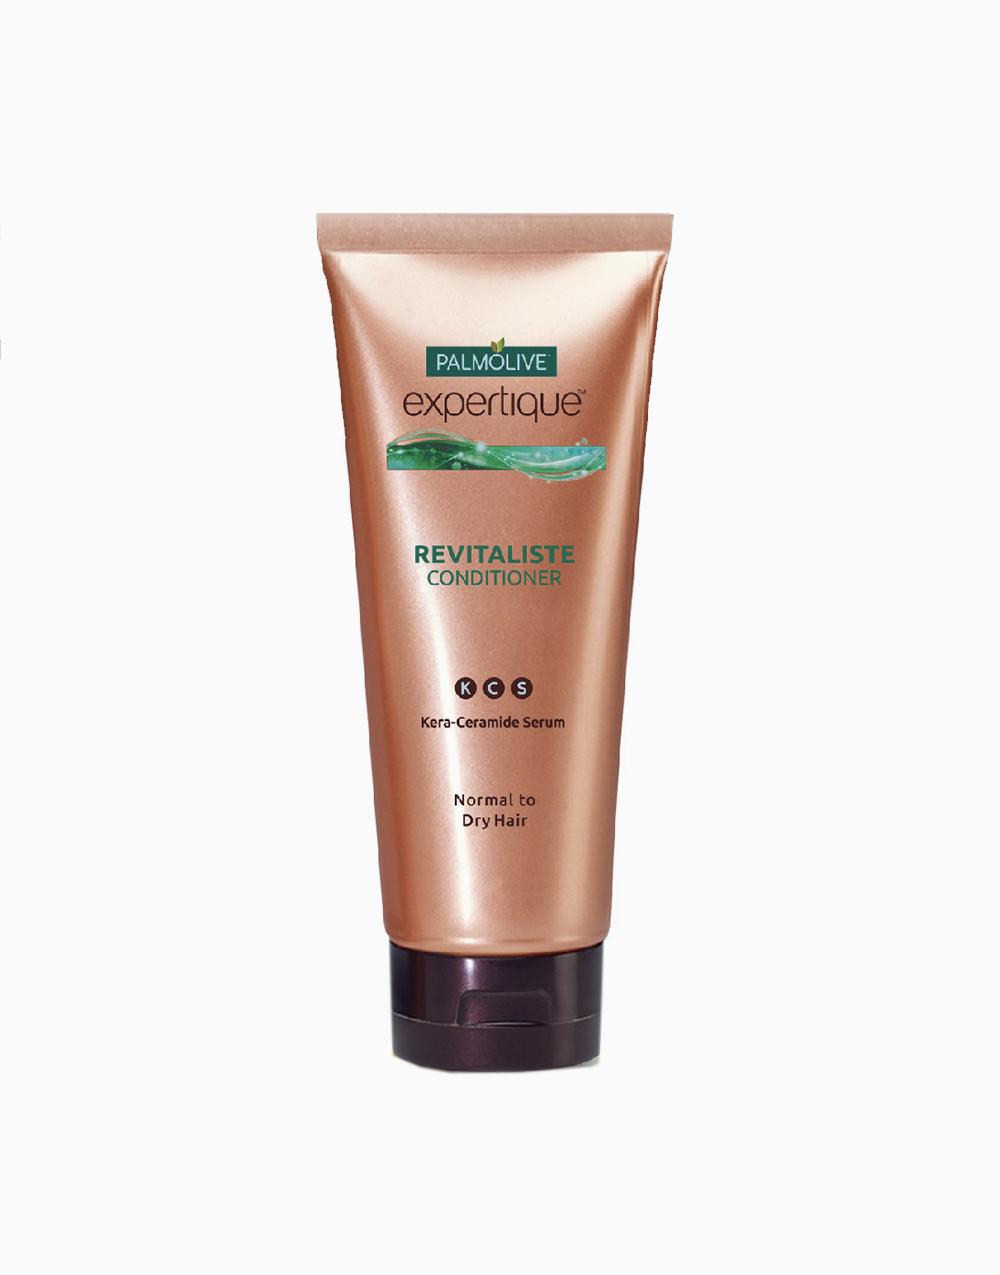 Expertique Revitaliste Conditioner (170ml) by Palmolive